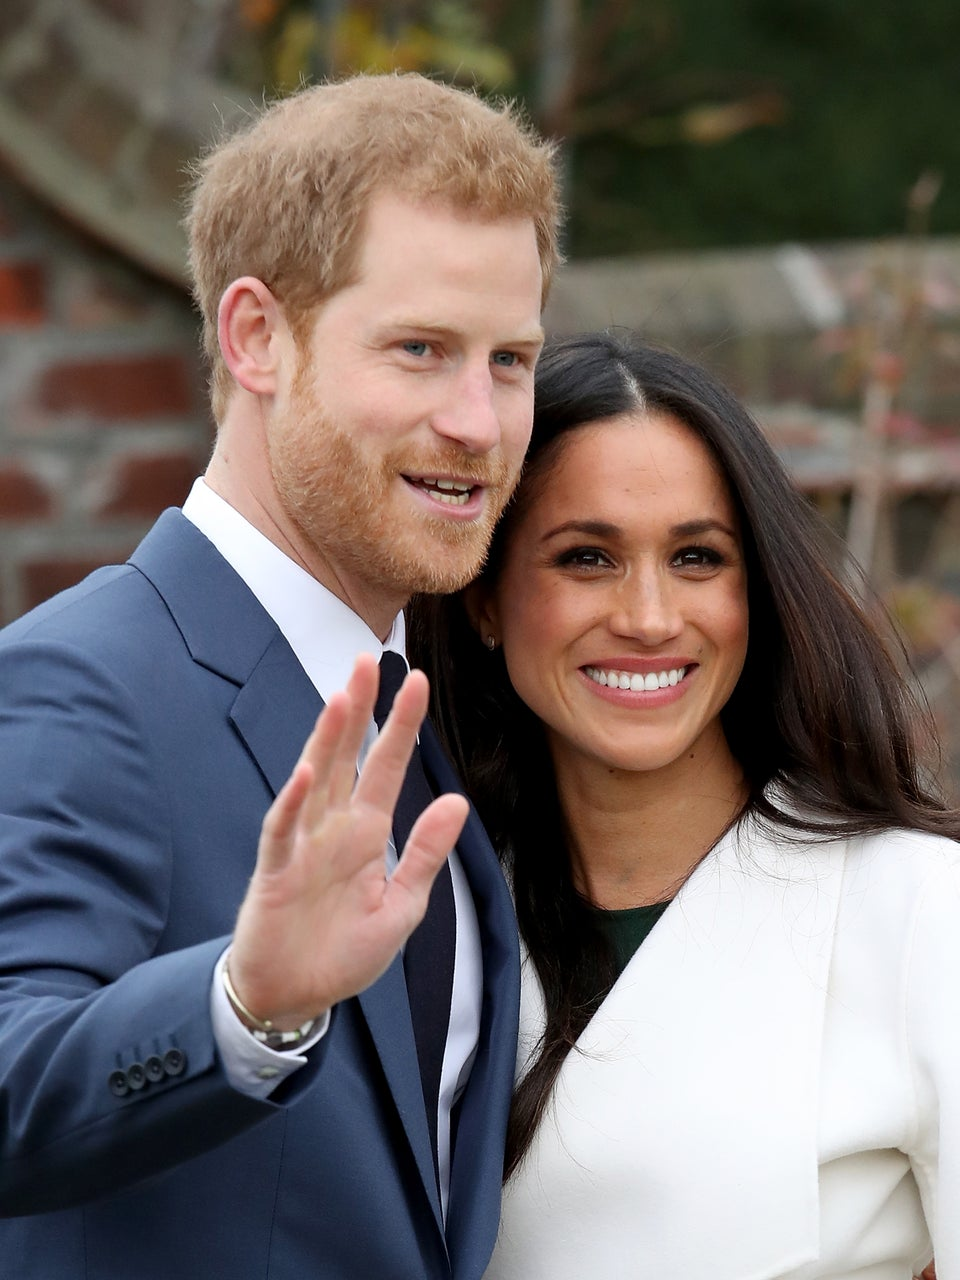 Prince Harry And Meghan Markle Received A Racist Letter Filled With Suspicious White Powder